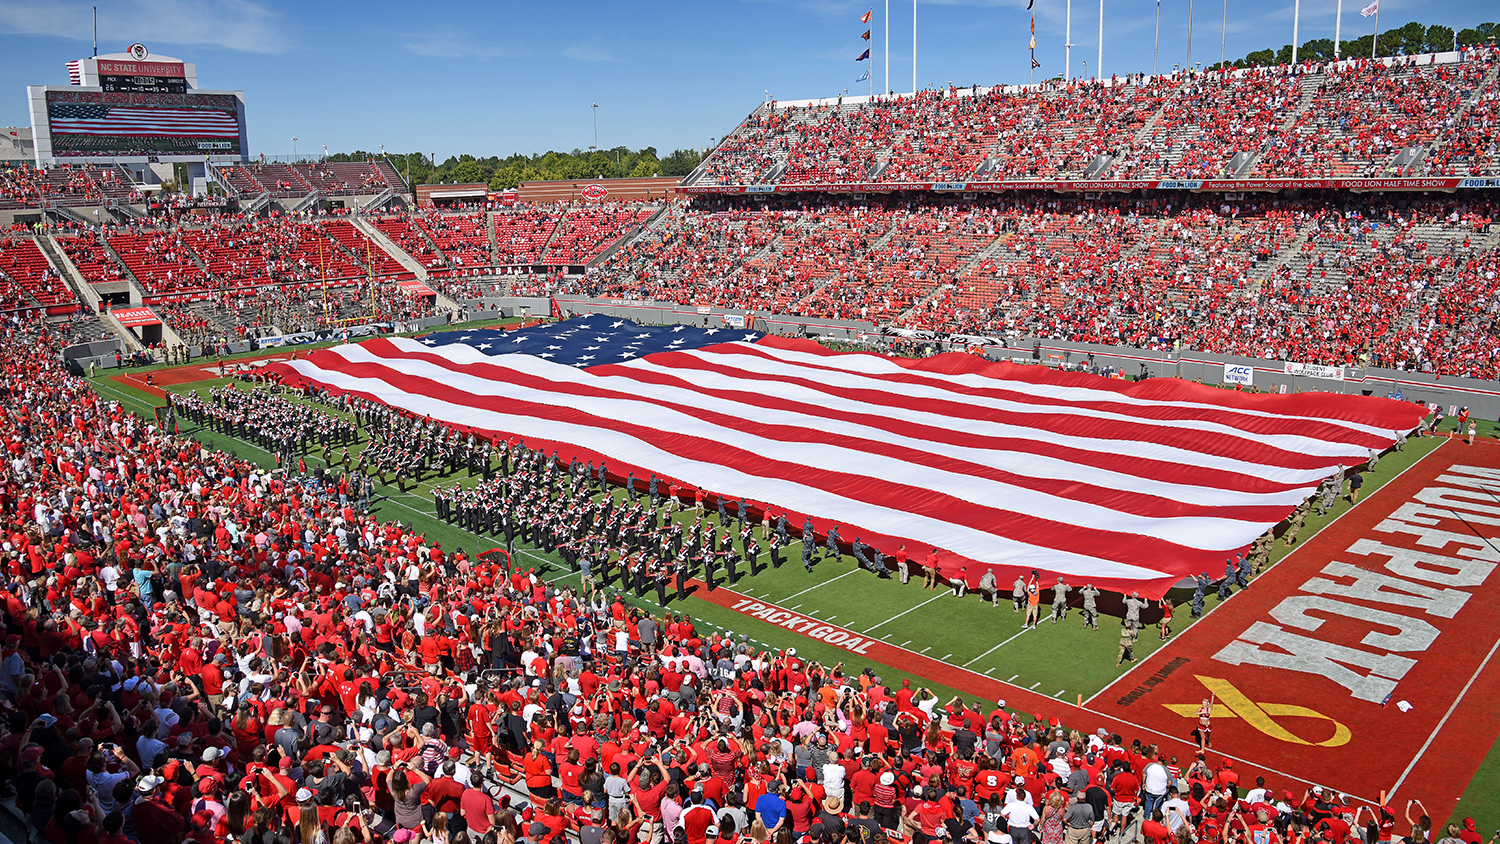 The American flag covers the field during a presentation at half time during the 2017 Military Appreciation Day at Carter-Finley Stadium.